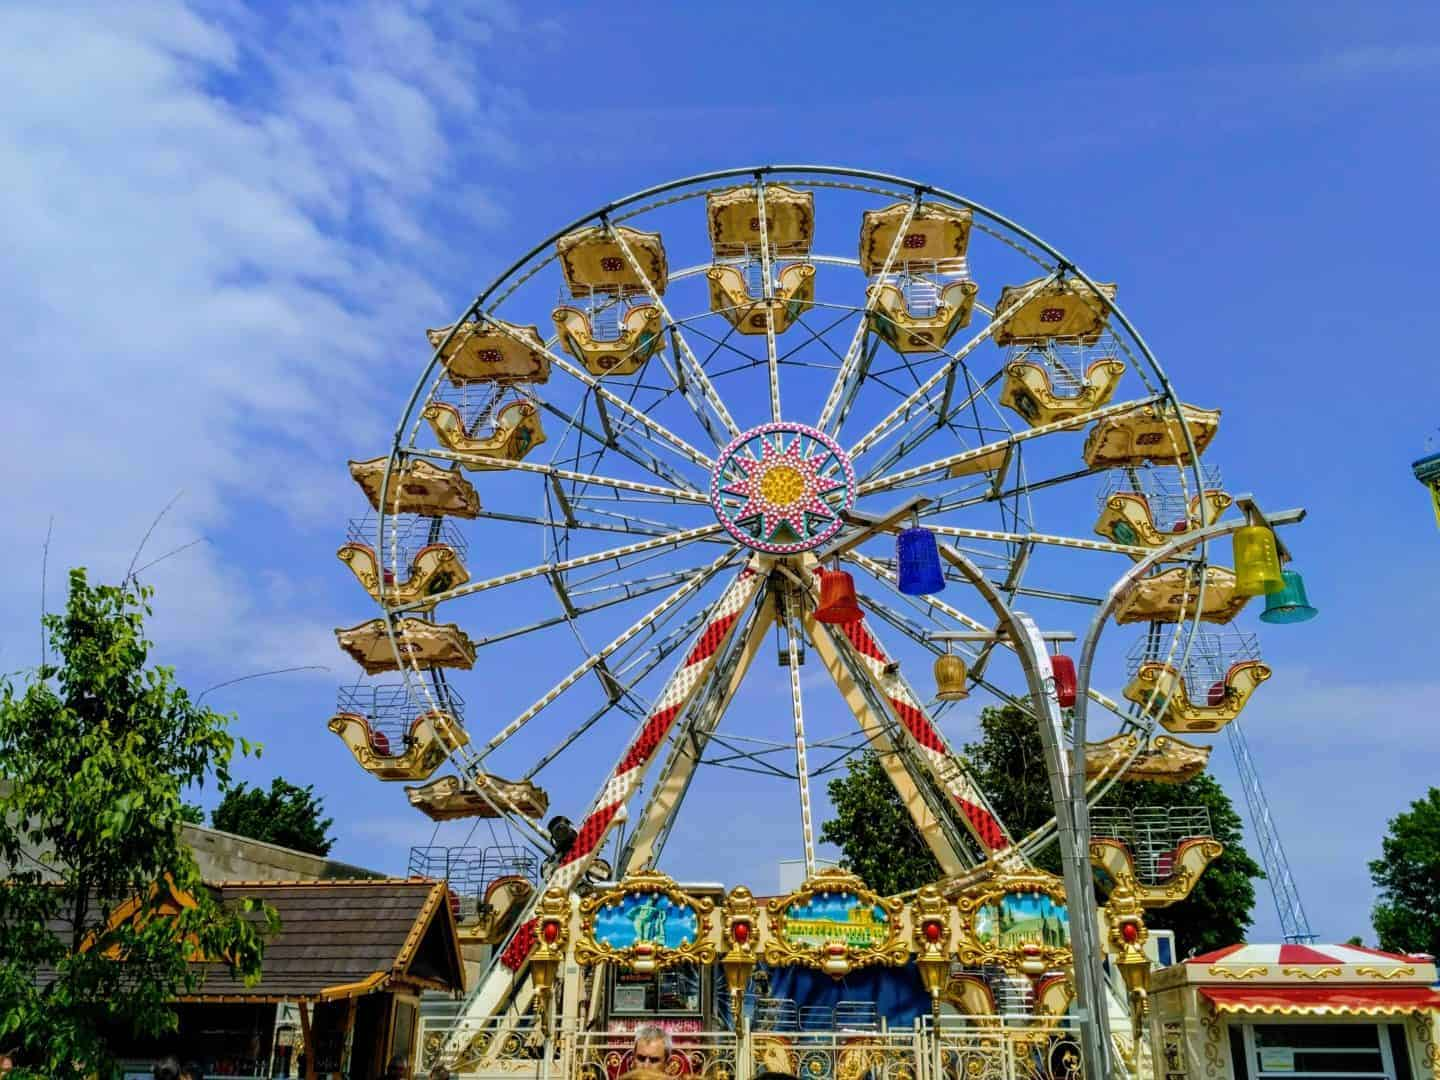 Prater in Vienna, May